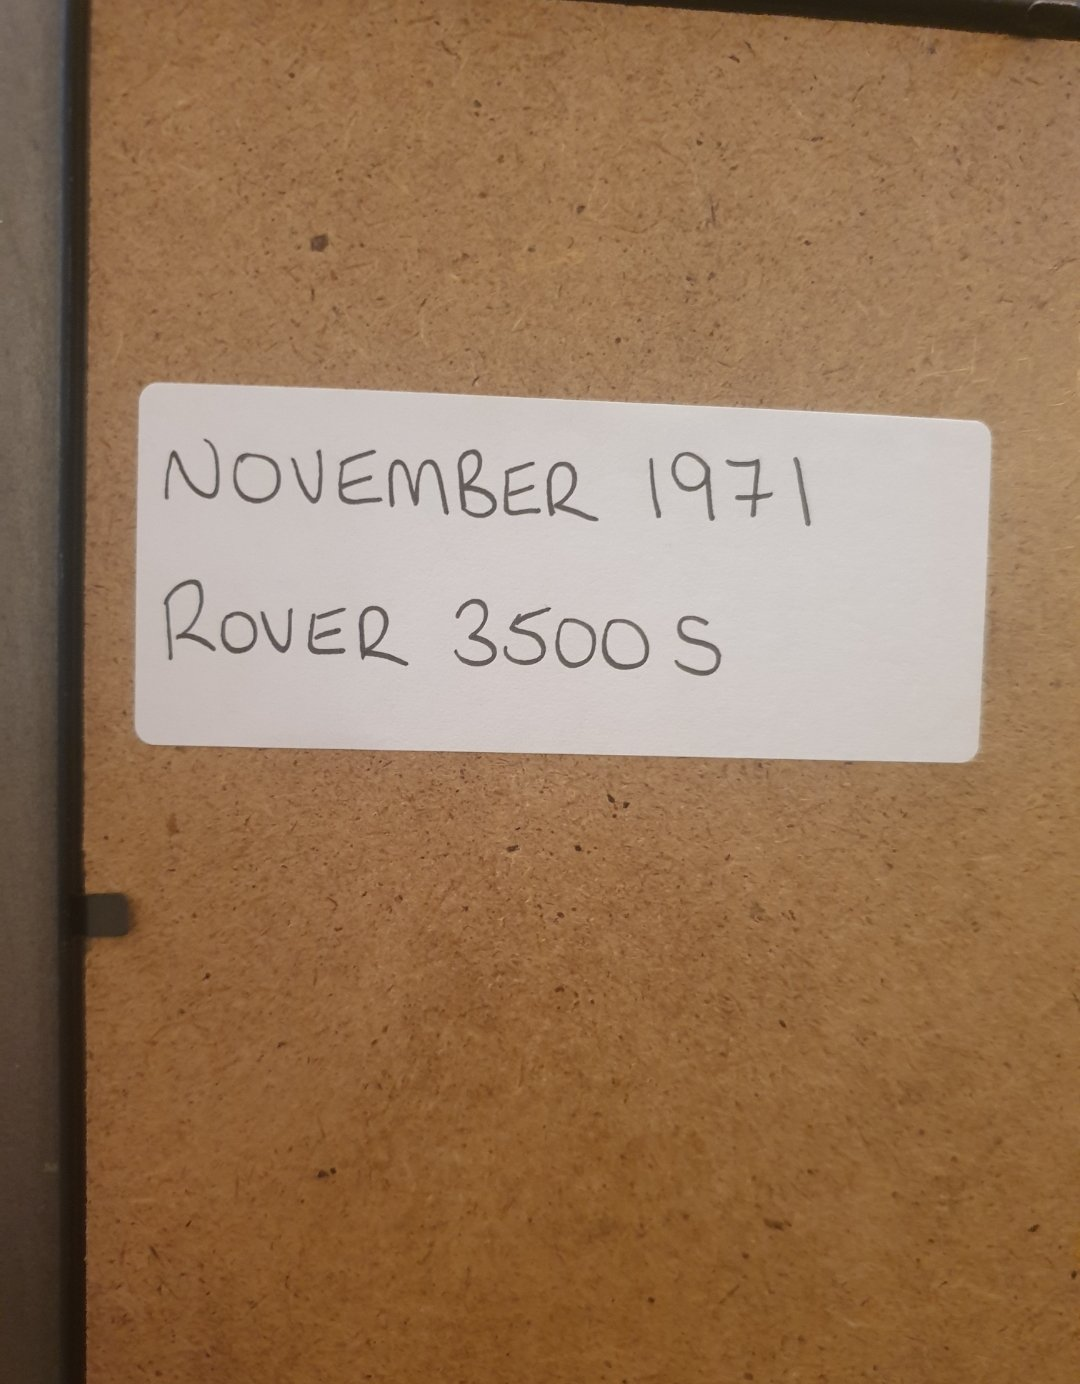 Original 1971 Rover 3500 Framed Advert  For Sale (picture 2 of 2)